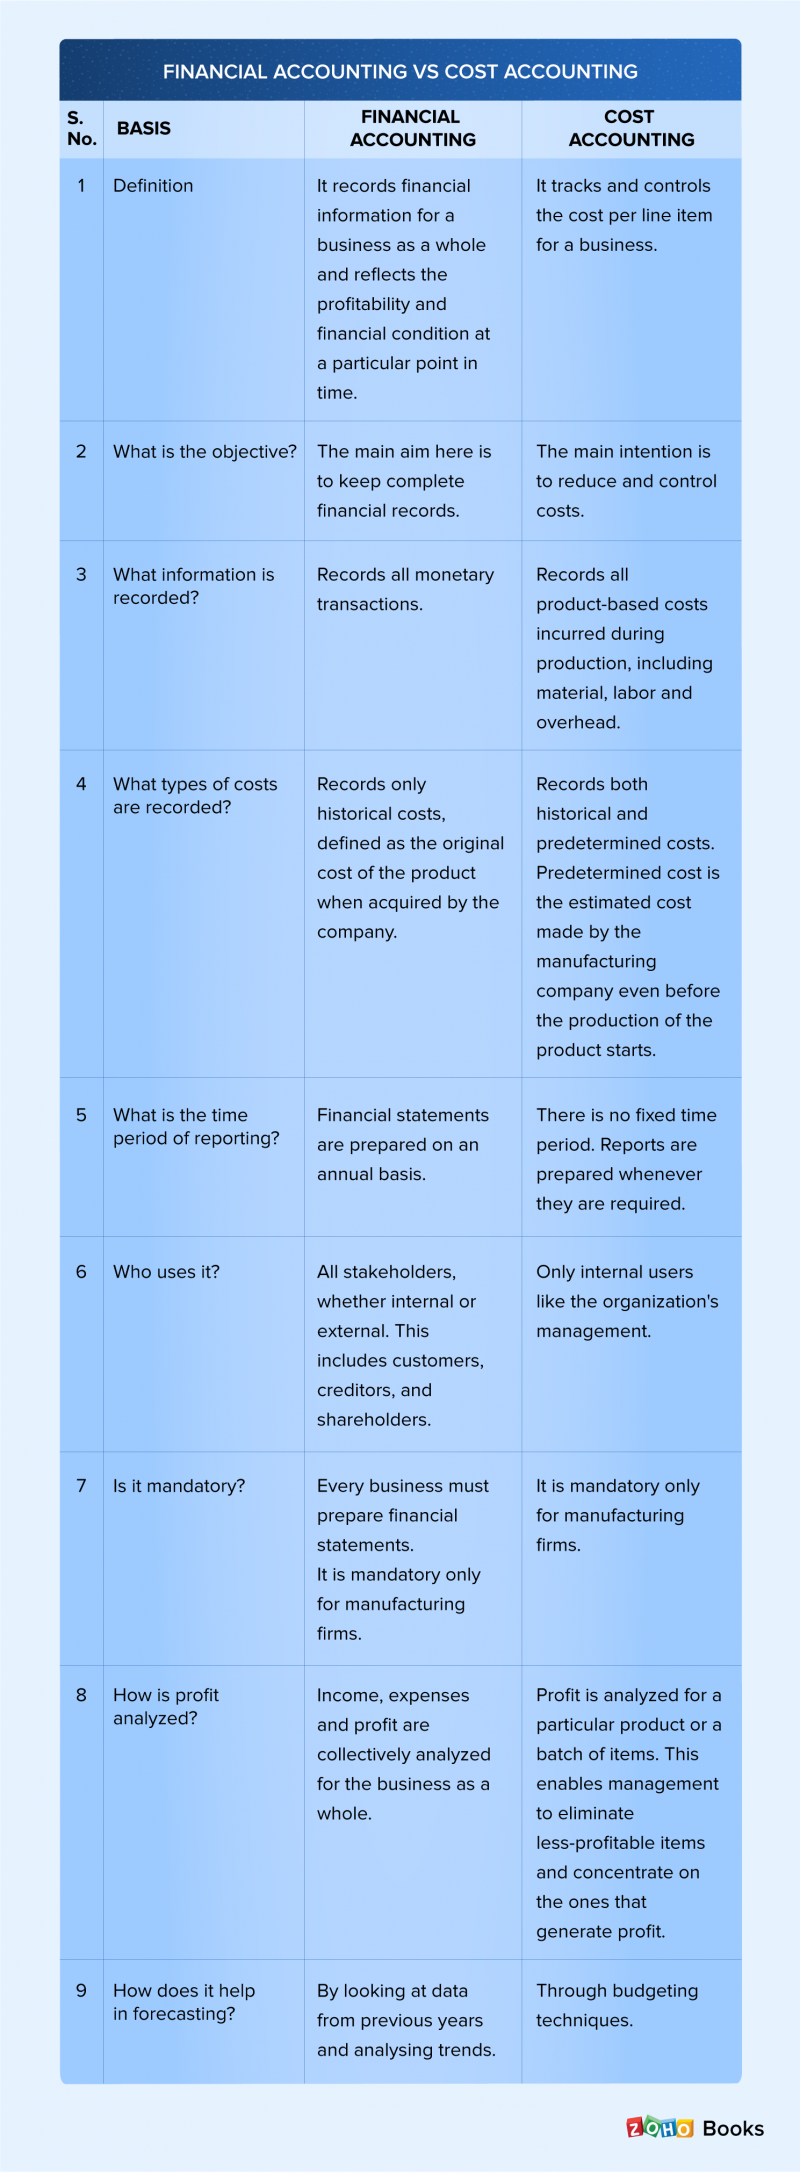 Cost accounting vs financial accounting - Zoho Books